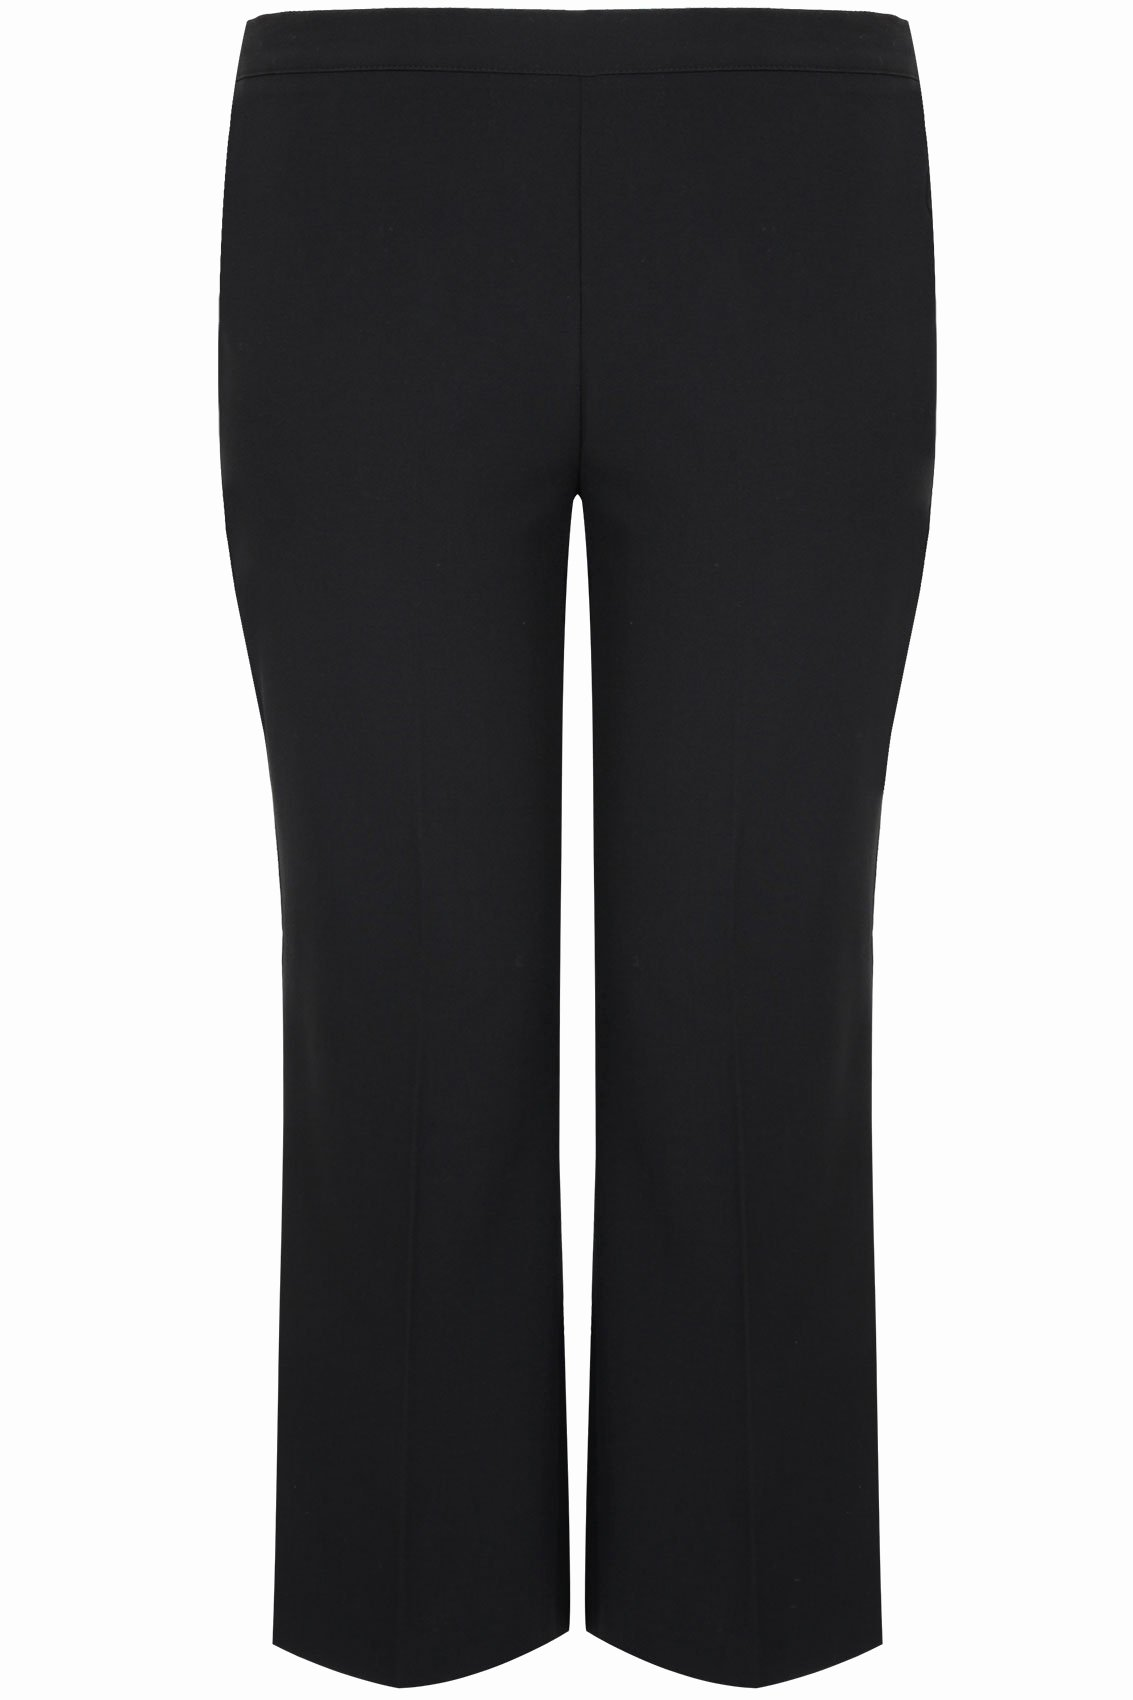 Store Hours Sign Template Luxury Black Classic Straight Leg Trousers with Elasticated